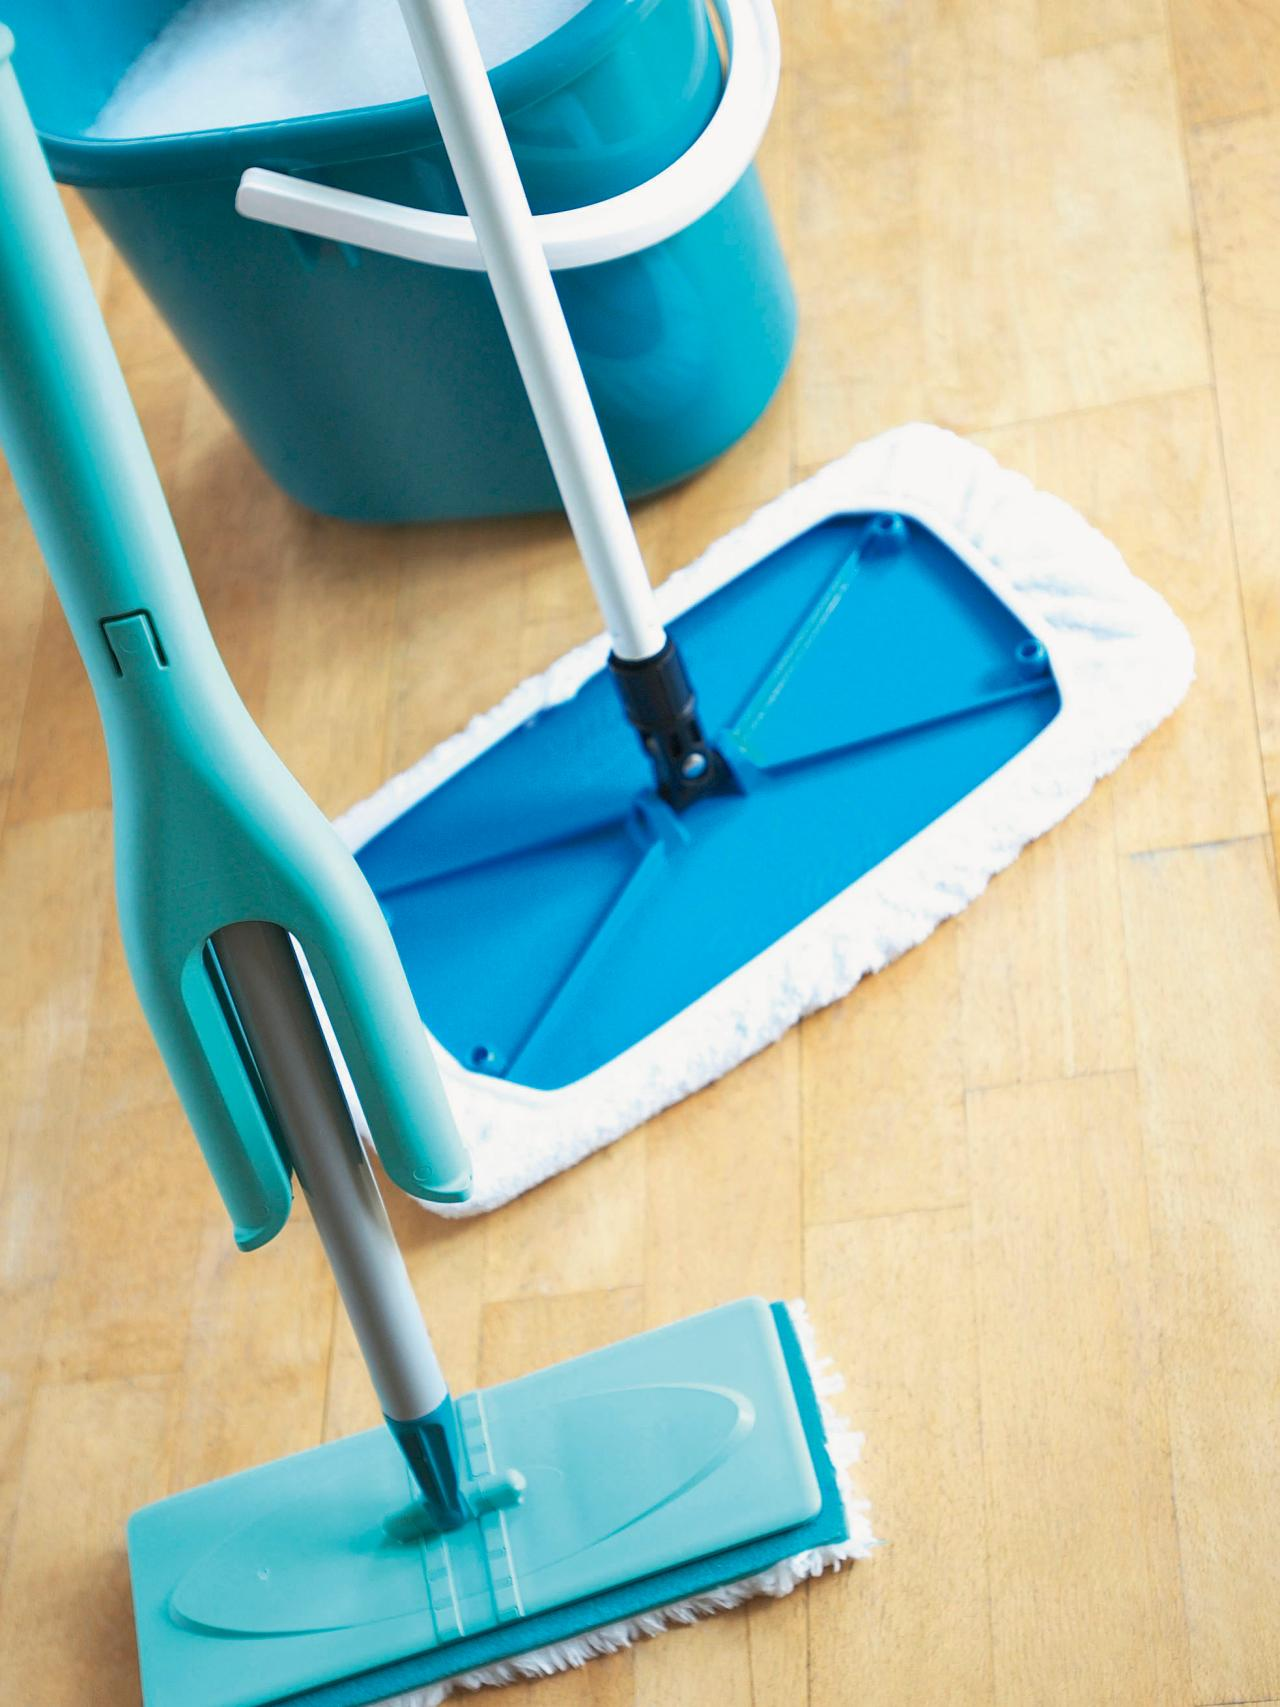 Cleaning Mistakes That You Should Avoid